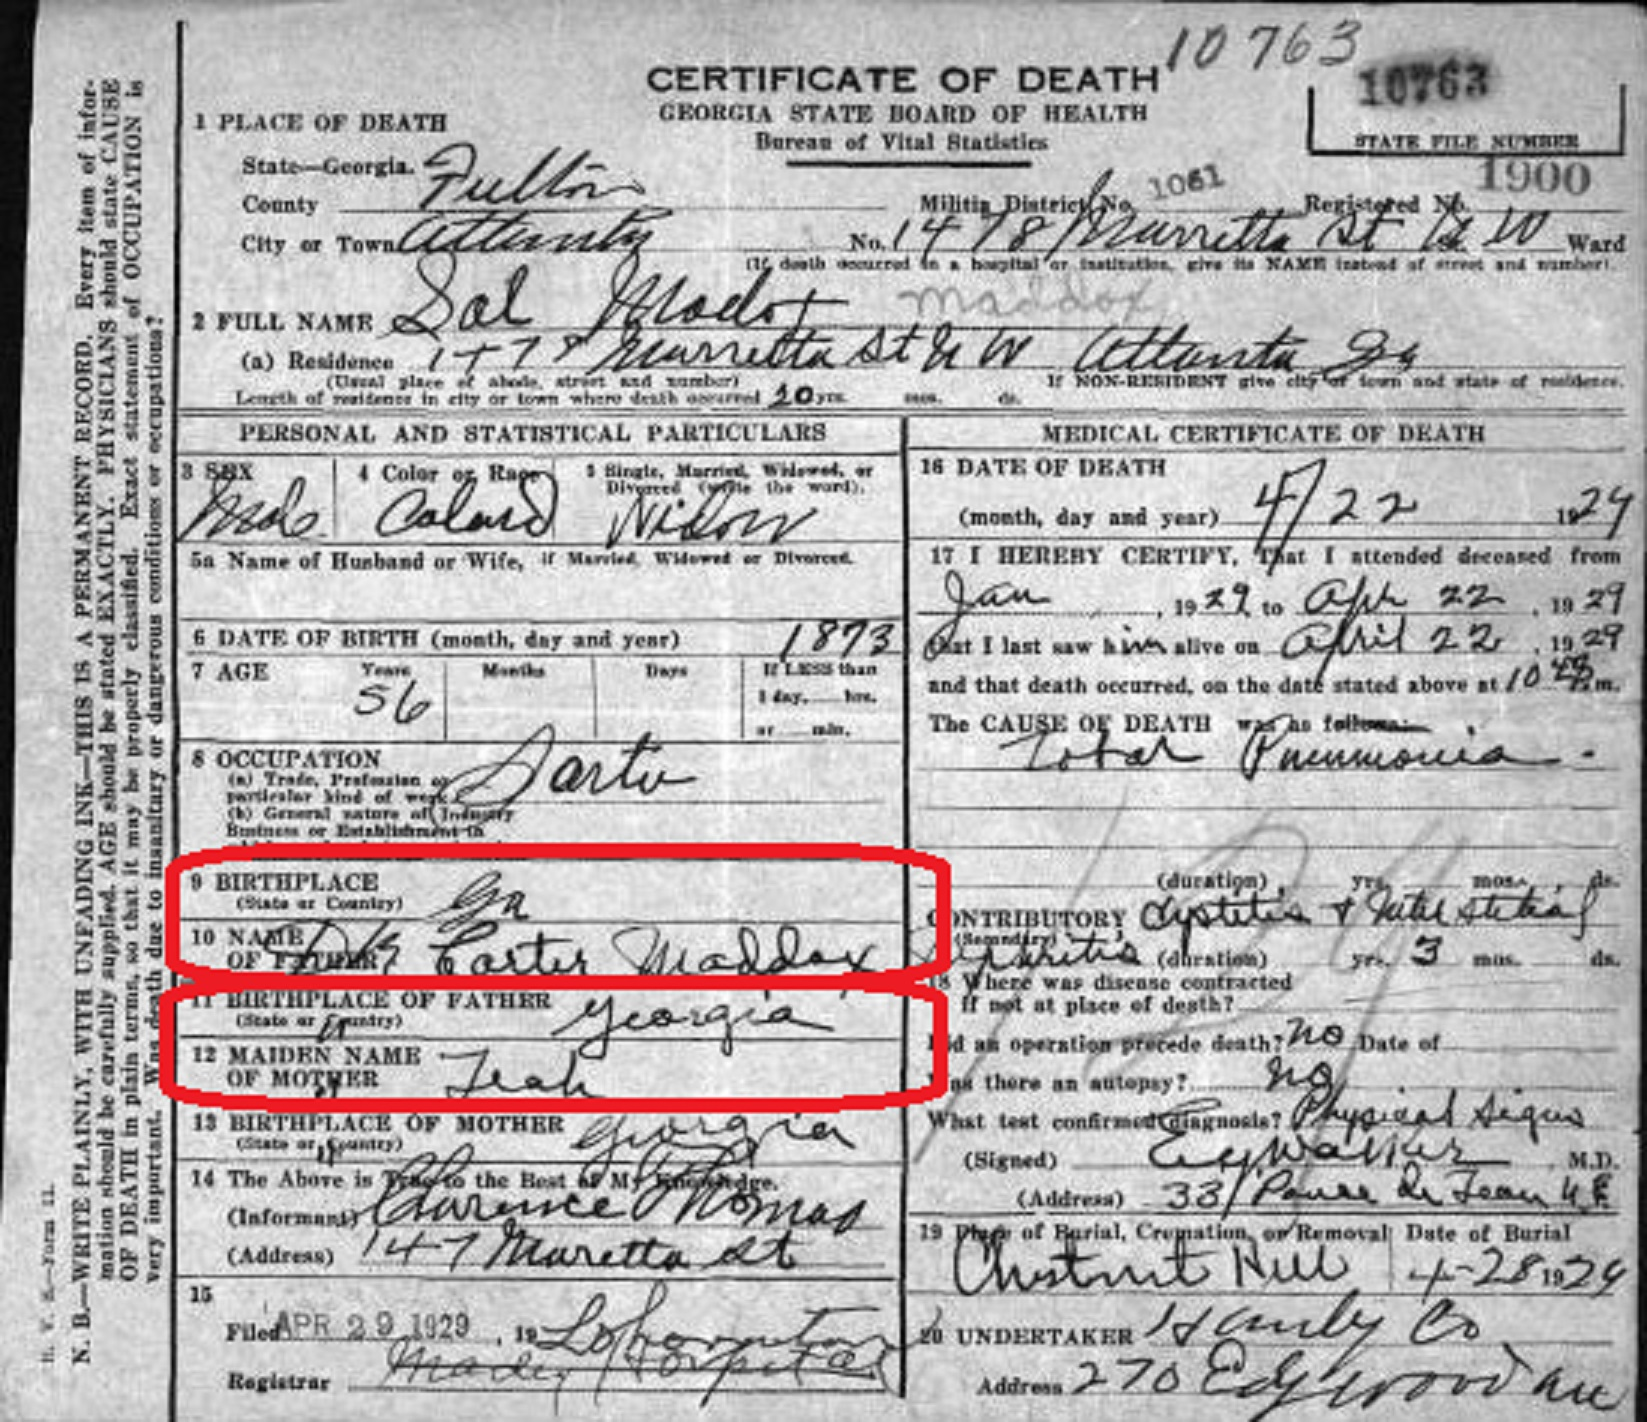 solomon maddox full death certificate (with Carter circled)